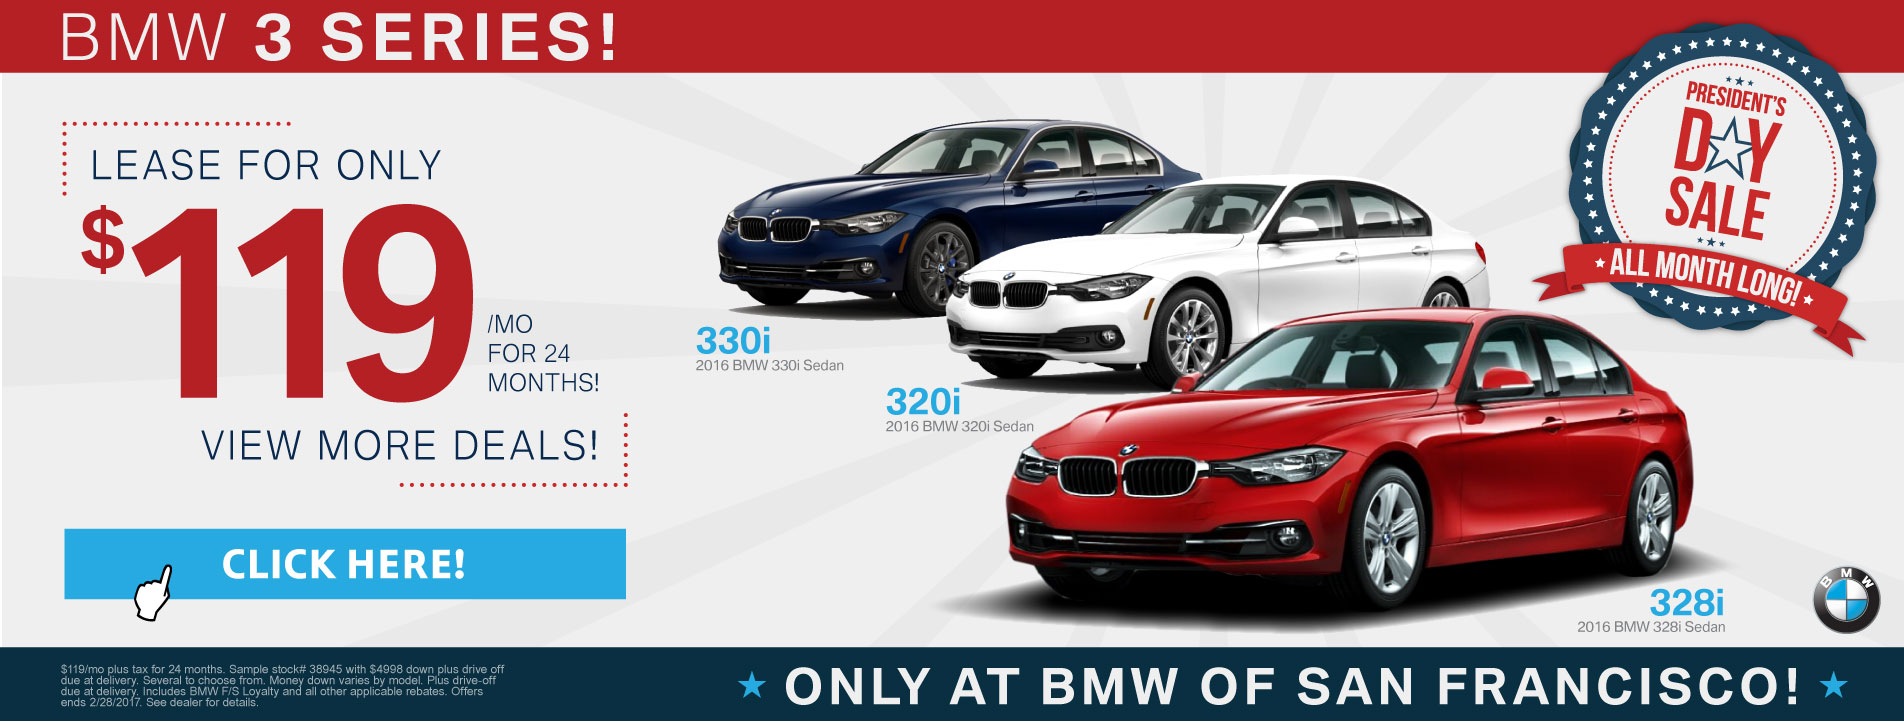 BMW 3 Series Sale